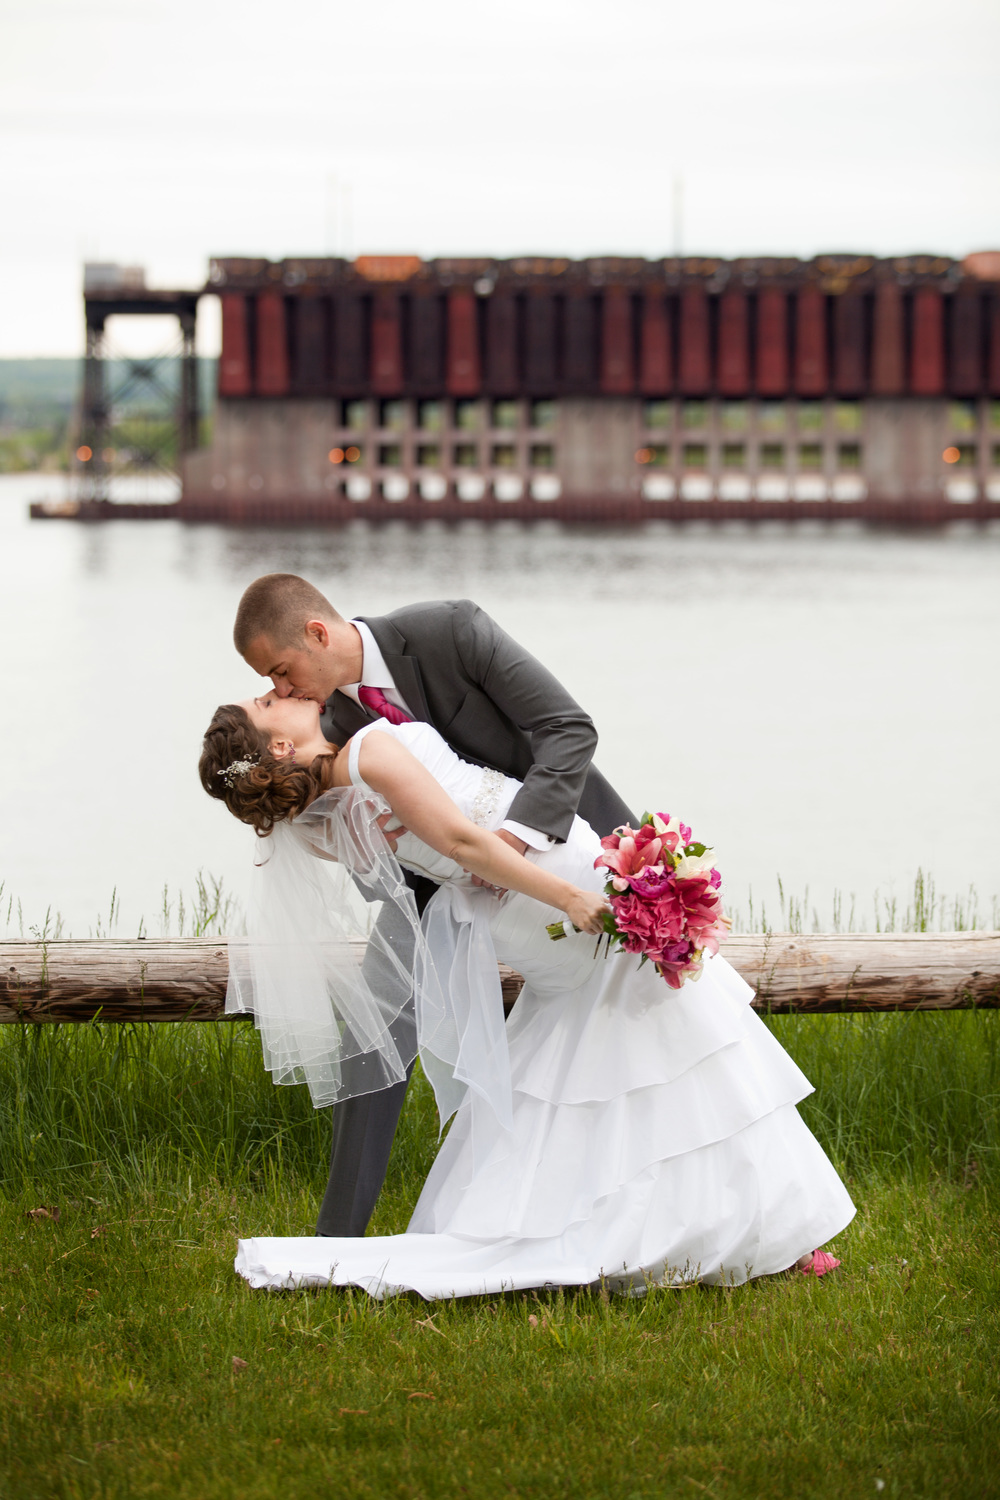 upper-peninsula-photographer-wedding-engagement-marquette-michigan-jackie-solomon-photography-191.jpg